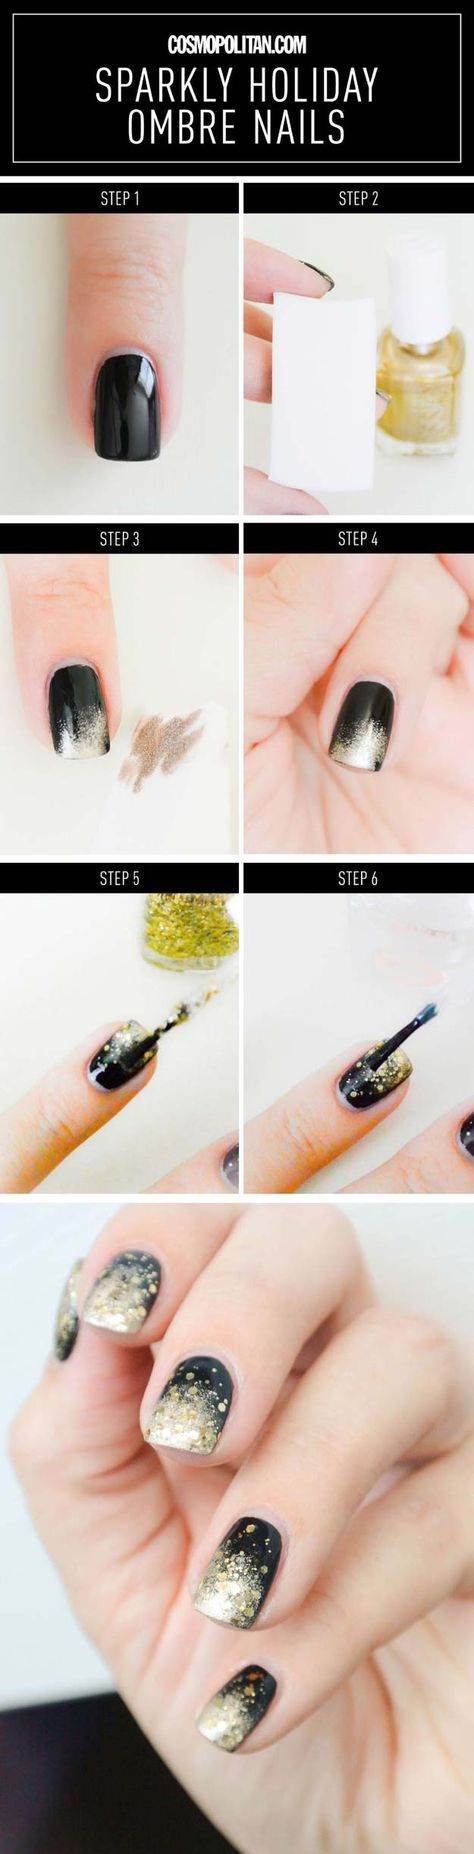 Unbelievably Brilliant French Manicures To Do At Home - Nail Art How To Sparkly Black and Gold Ombre Mani- Awesome DIY Tutorials and Step By Step Guides on How To Do the Perfect French Manicure - Articles on Easy Nailart Style Designs and Polish Products - Get Your Nails Looking Like They Came Out of The Top Salons - thegoddess.com/french-manicures-at-home